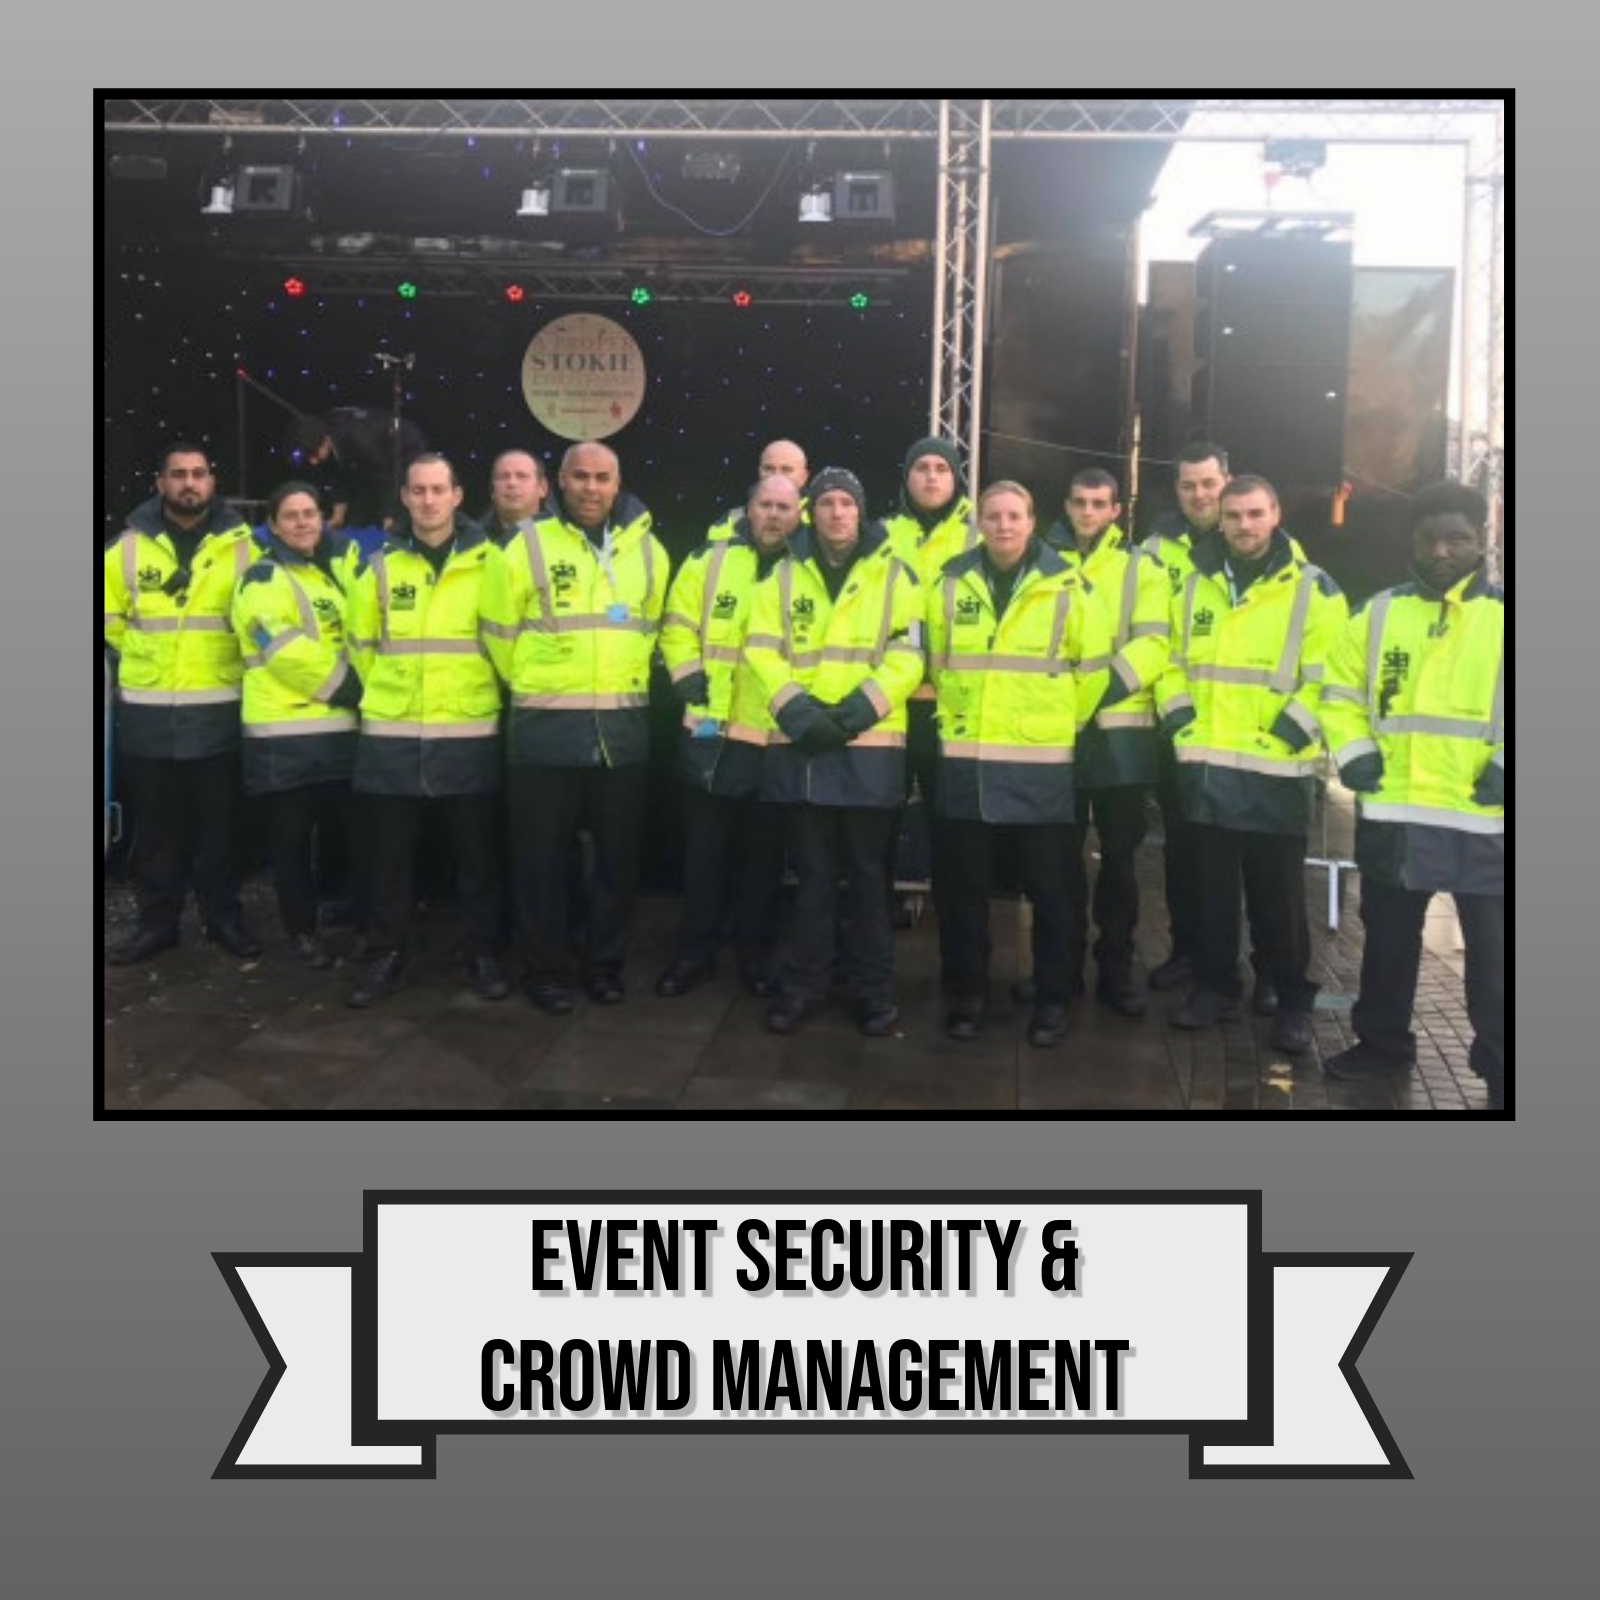 EVENT SECURITY Stoke-On-Trent